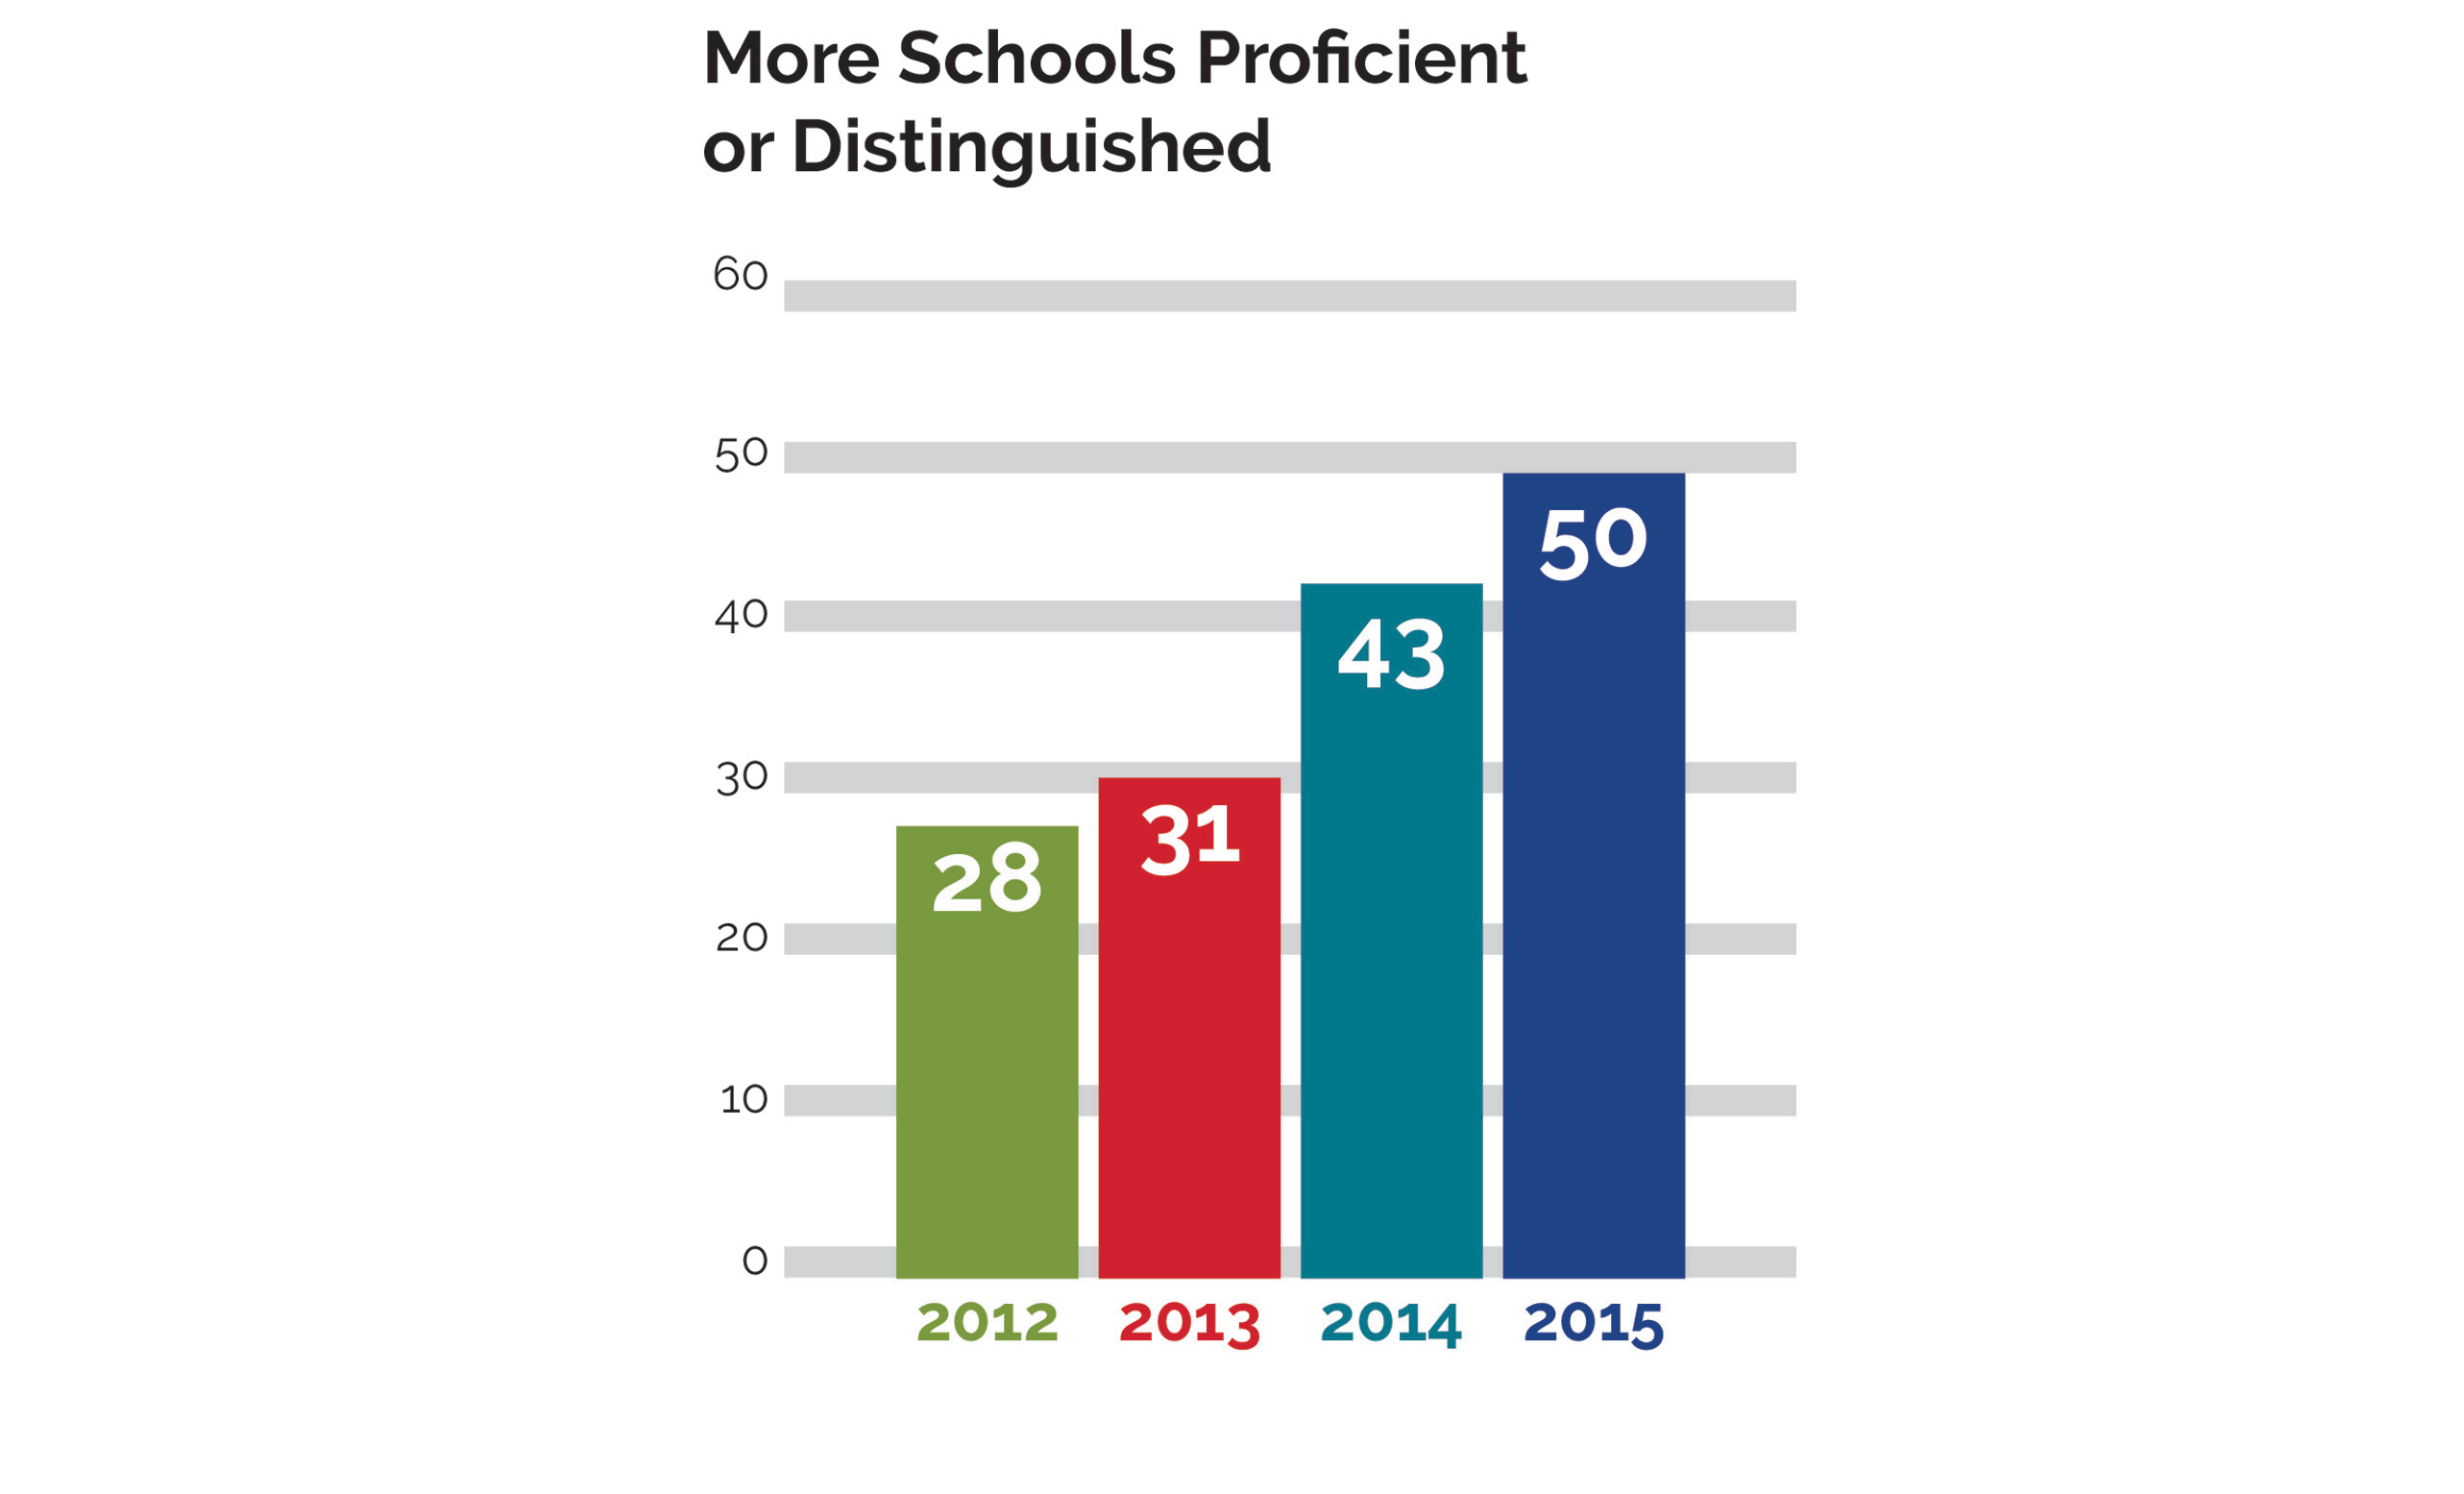 Schools Proficient or Distinguished, 2012 28, 2013 31, 2014 43, 2015 50